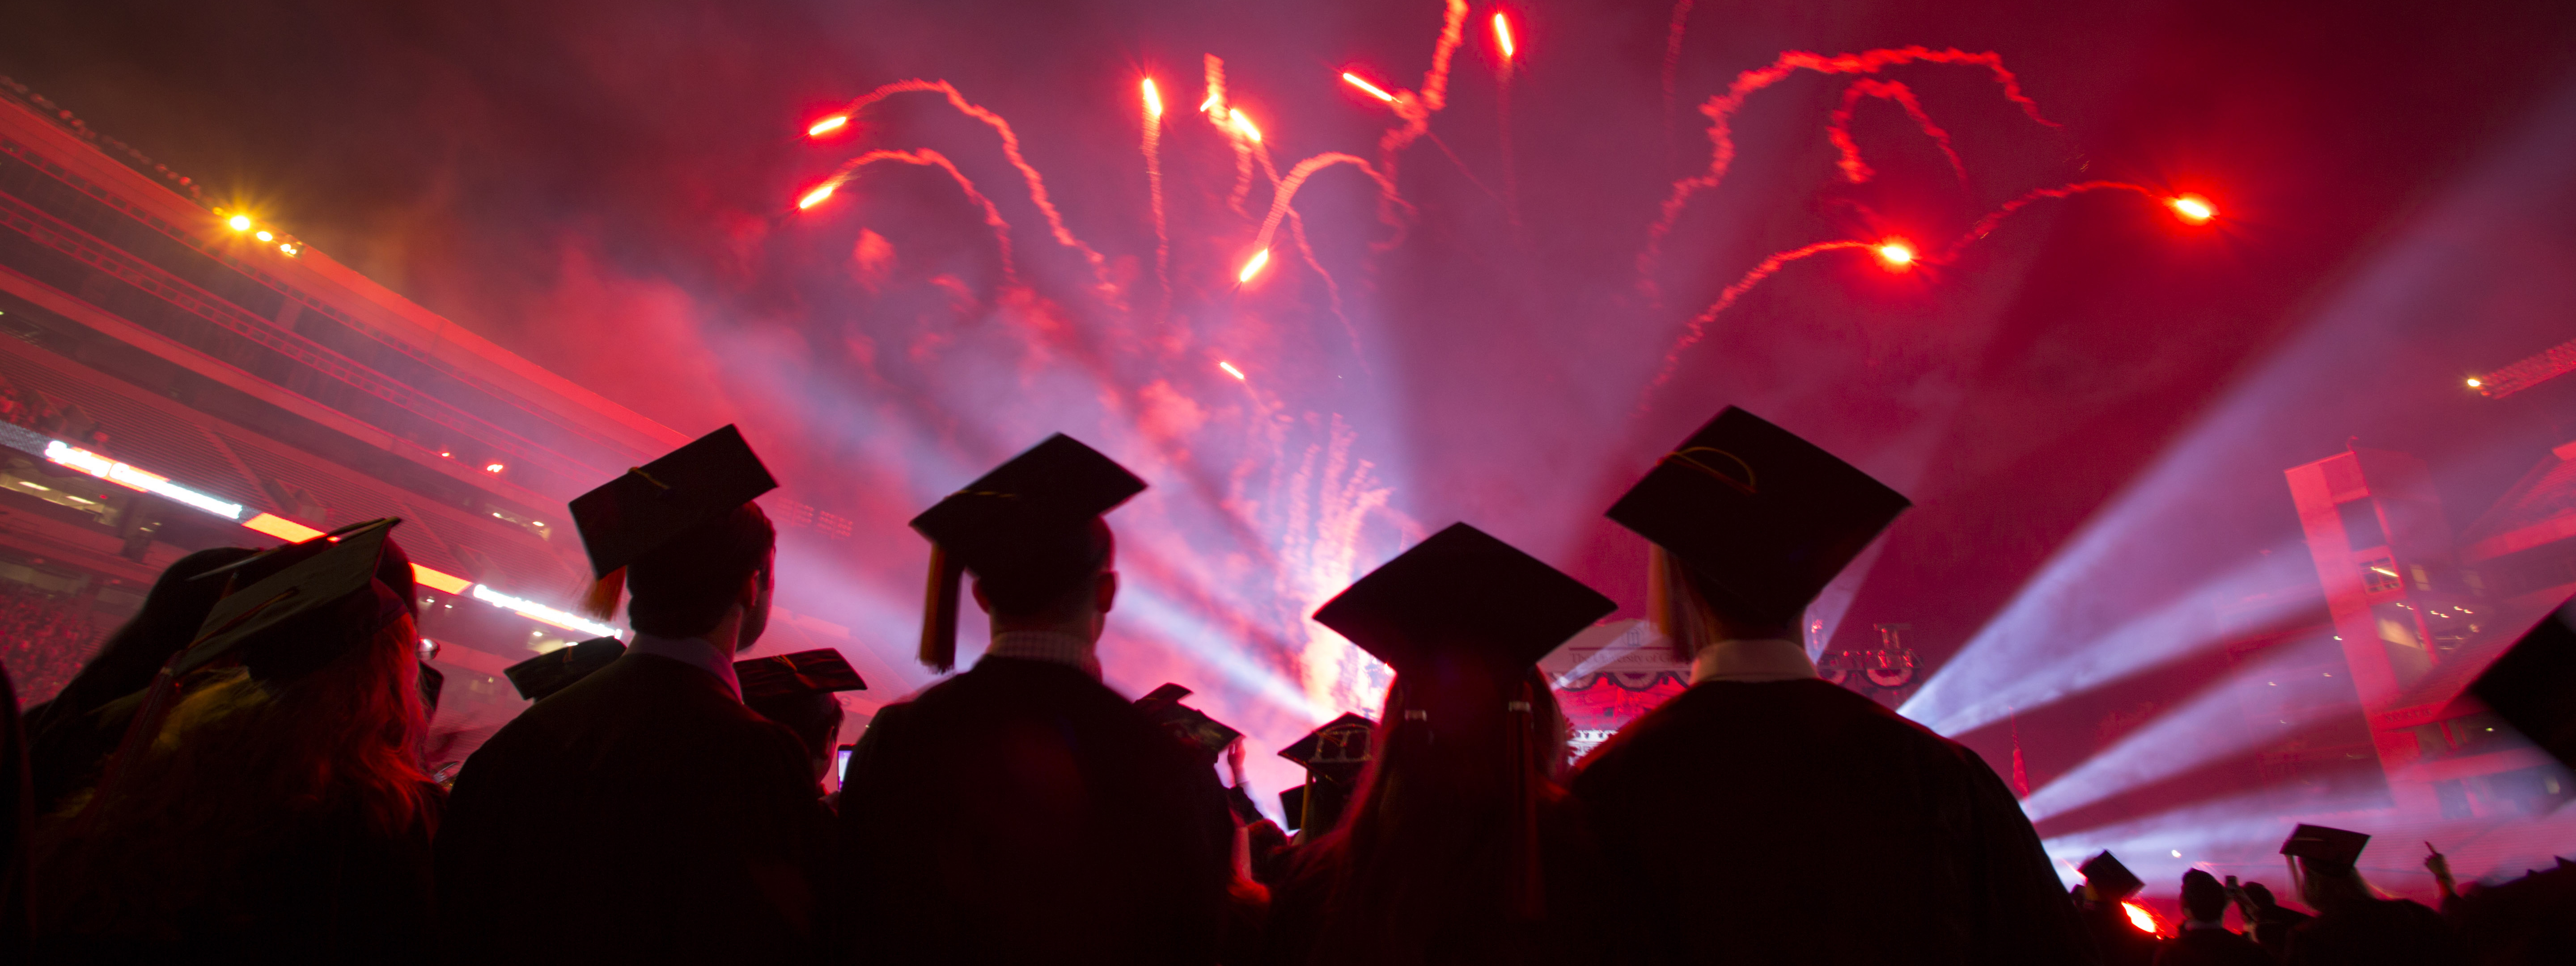 Students celebrate graduation with fireworks at Commencement.